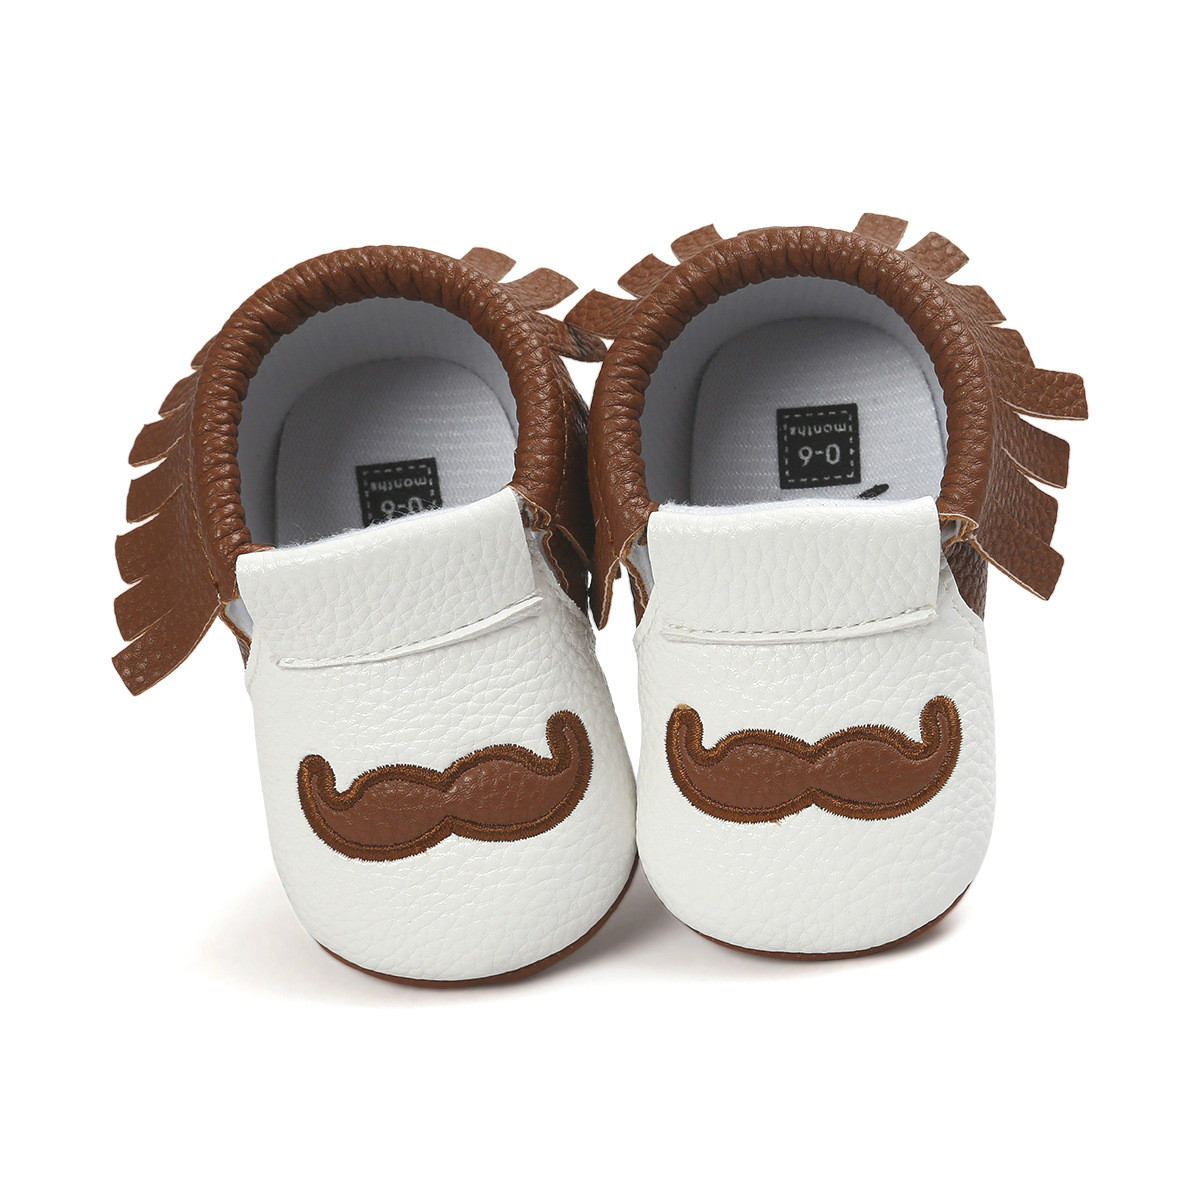 Baby girls boys shoes Pu Leather moccasins newborn infant white boy girl shoes toddler doux bebes chaussure footwear